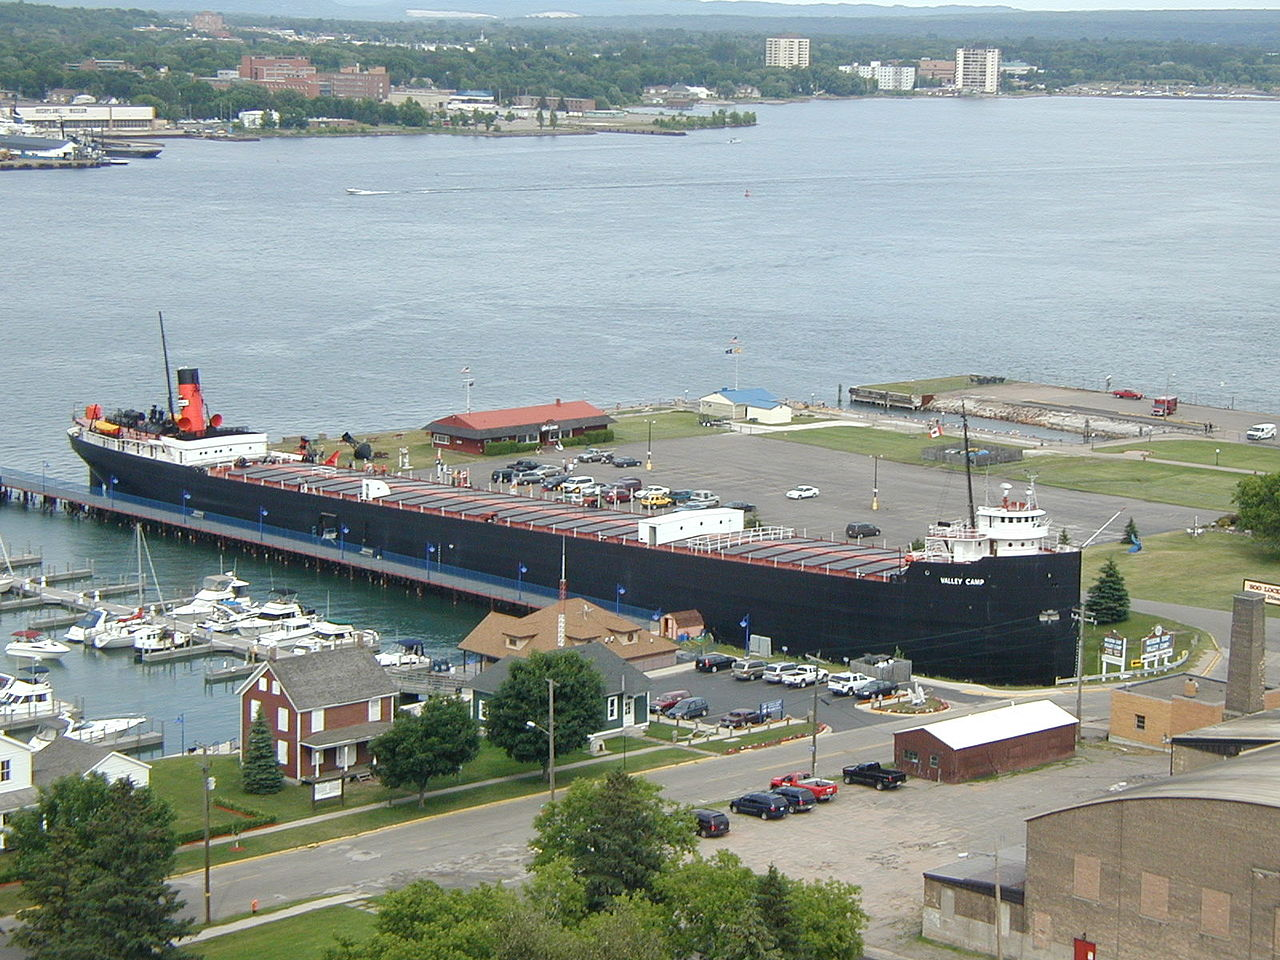 SS Valley Camp, Sault Ste Marie, Michigan (Photo Credit: Wikipedia)